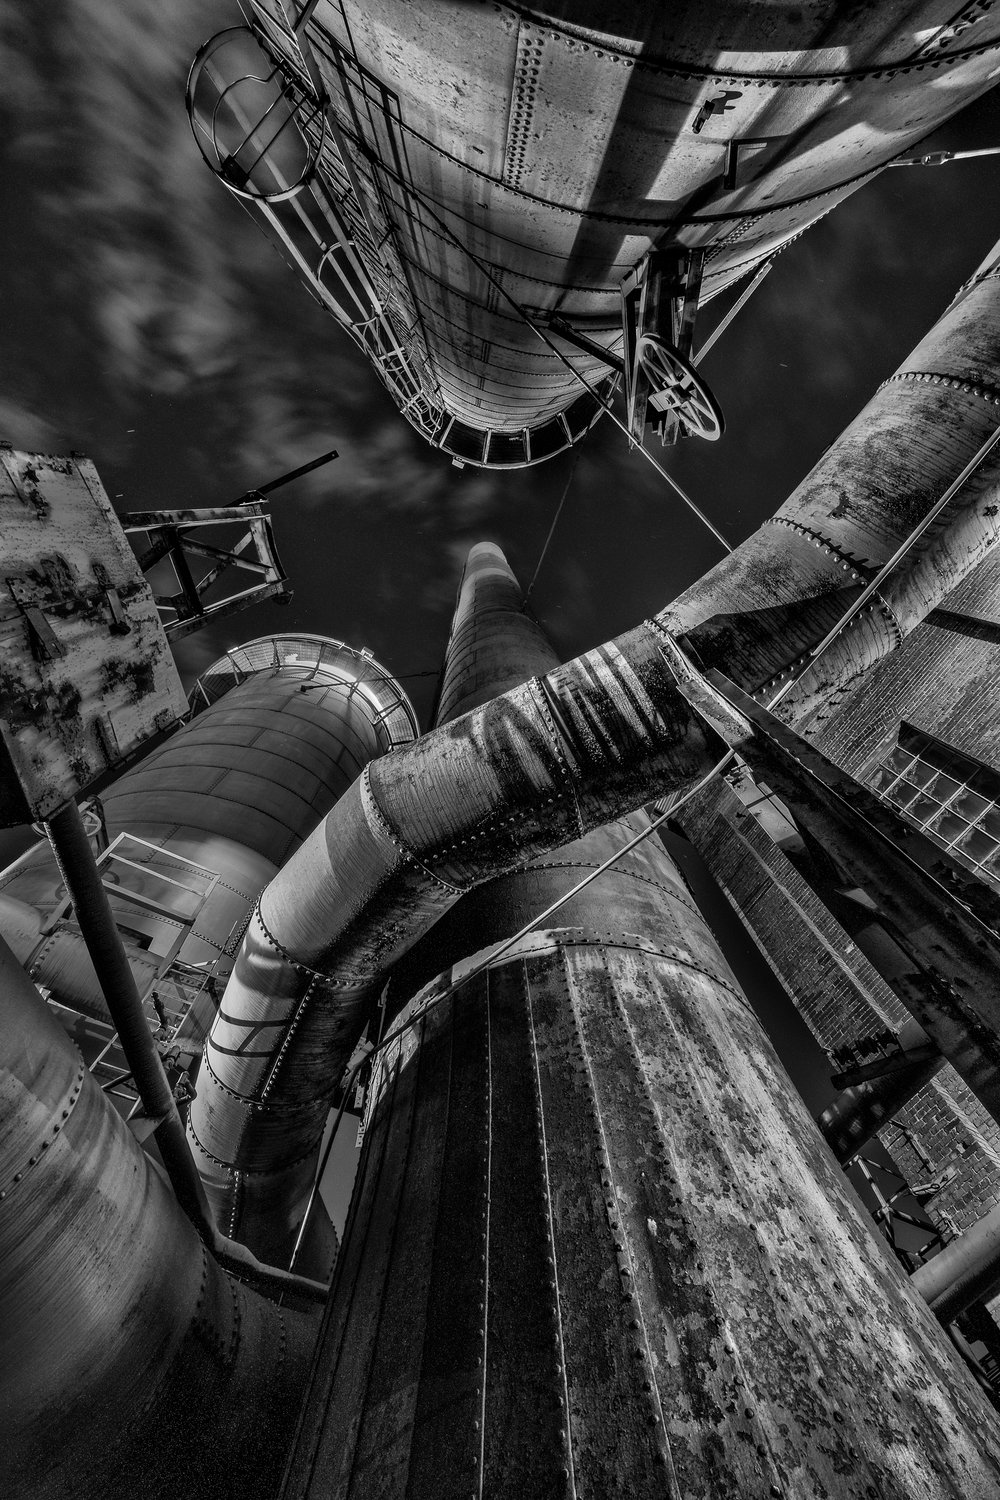 Sloss Furnaces National Historic Landmark—COMPLETED - Focus on black-and-white light painting